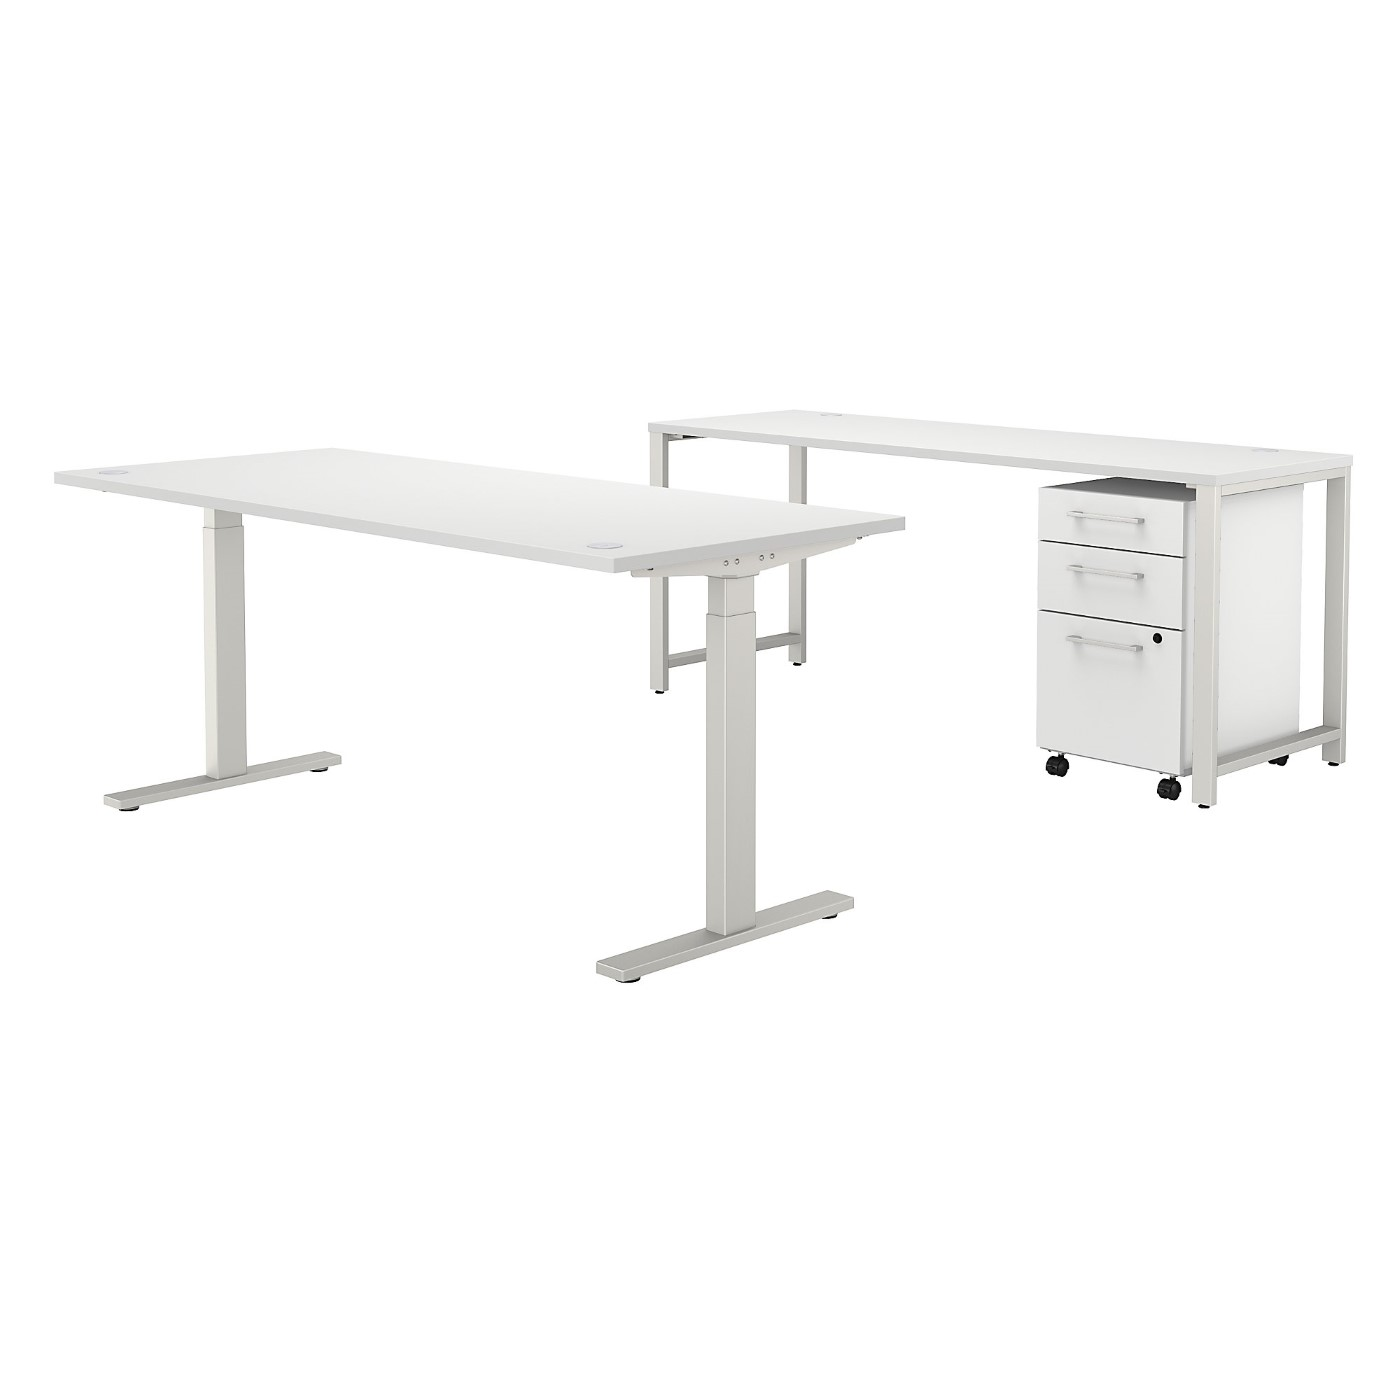 BUSH BUSINESS FURNITURE 400 SERIES 72W X 30D HEIGHT ADJUSTABLE STANDING DESK WITH CREDENZA AND DRAWERS. FREE SHIPPING